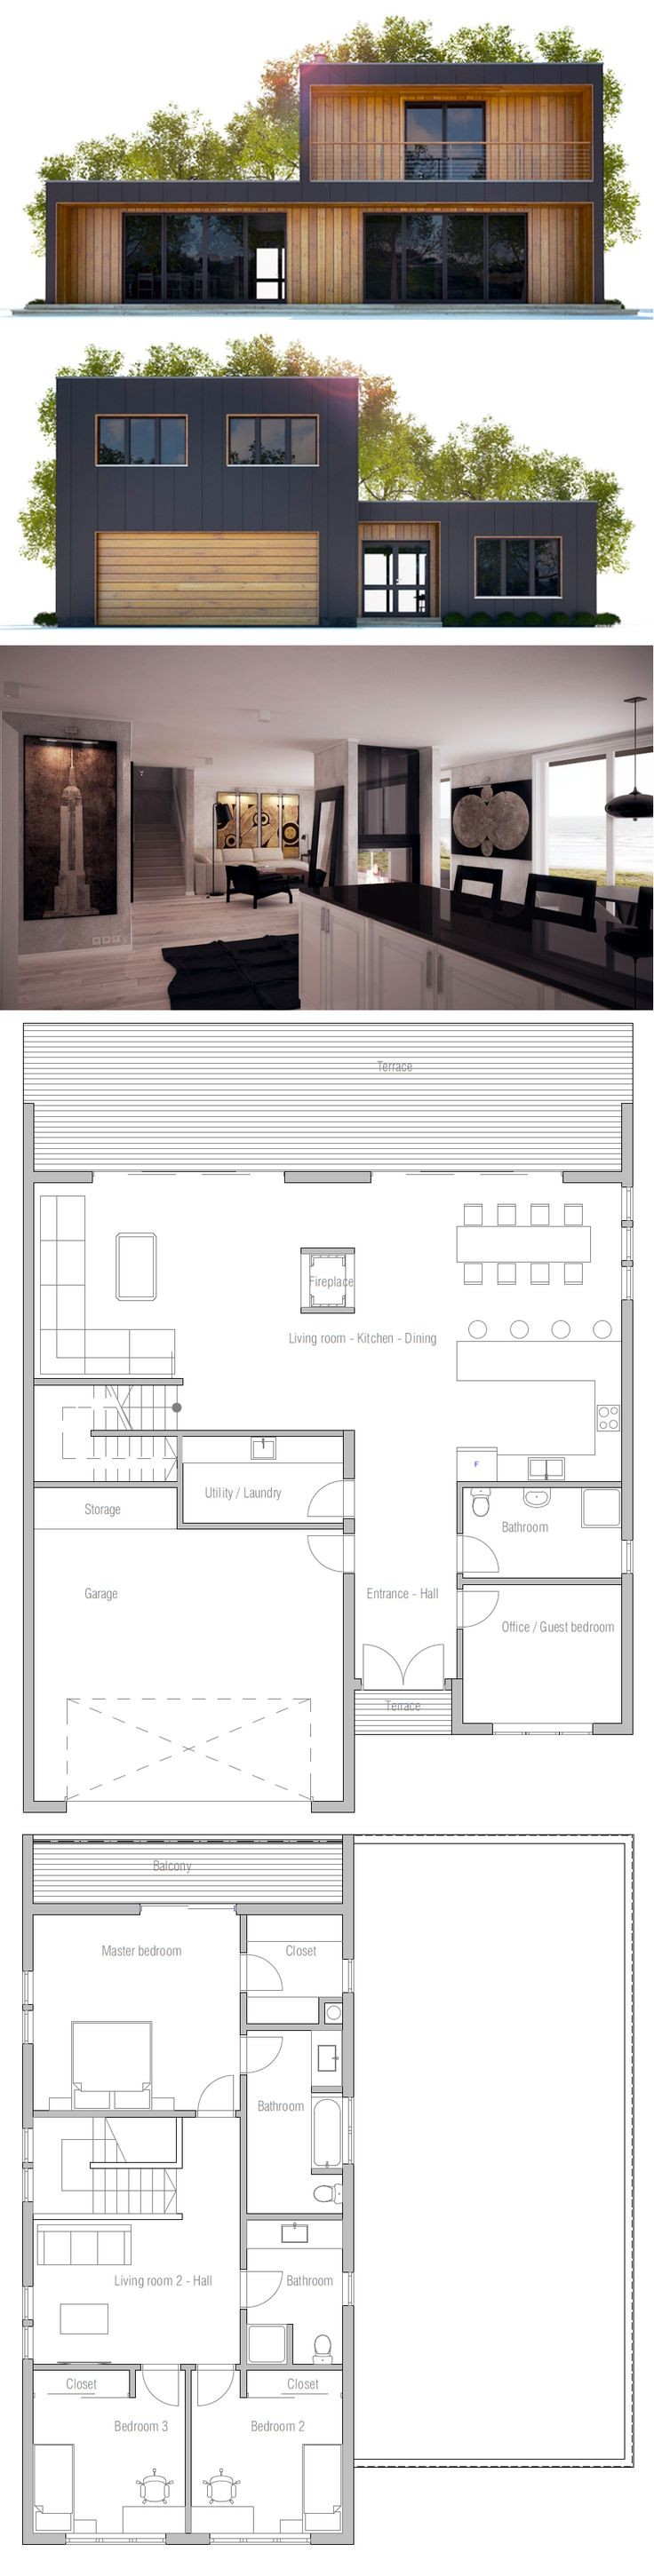 container house house plan distribucin who else wants simple step by step plans to design and build a container home from scratch - Simple Modern House Floor Plans